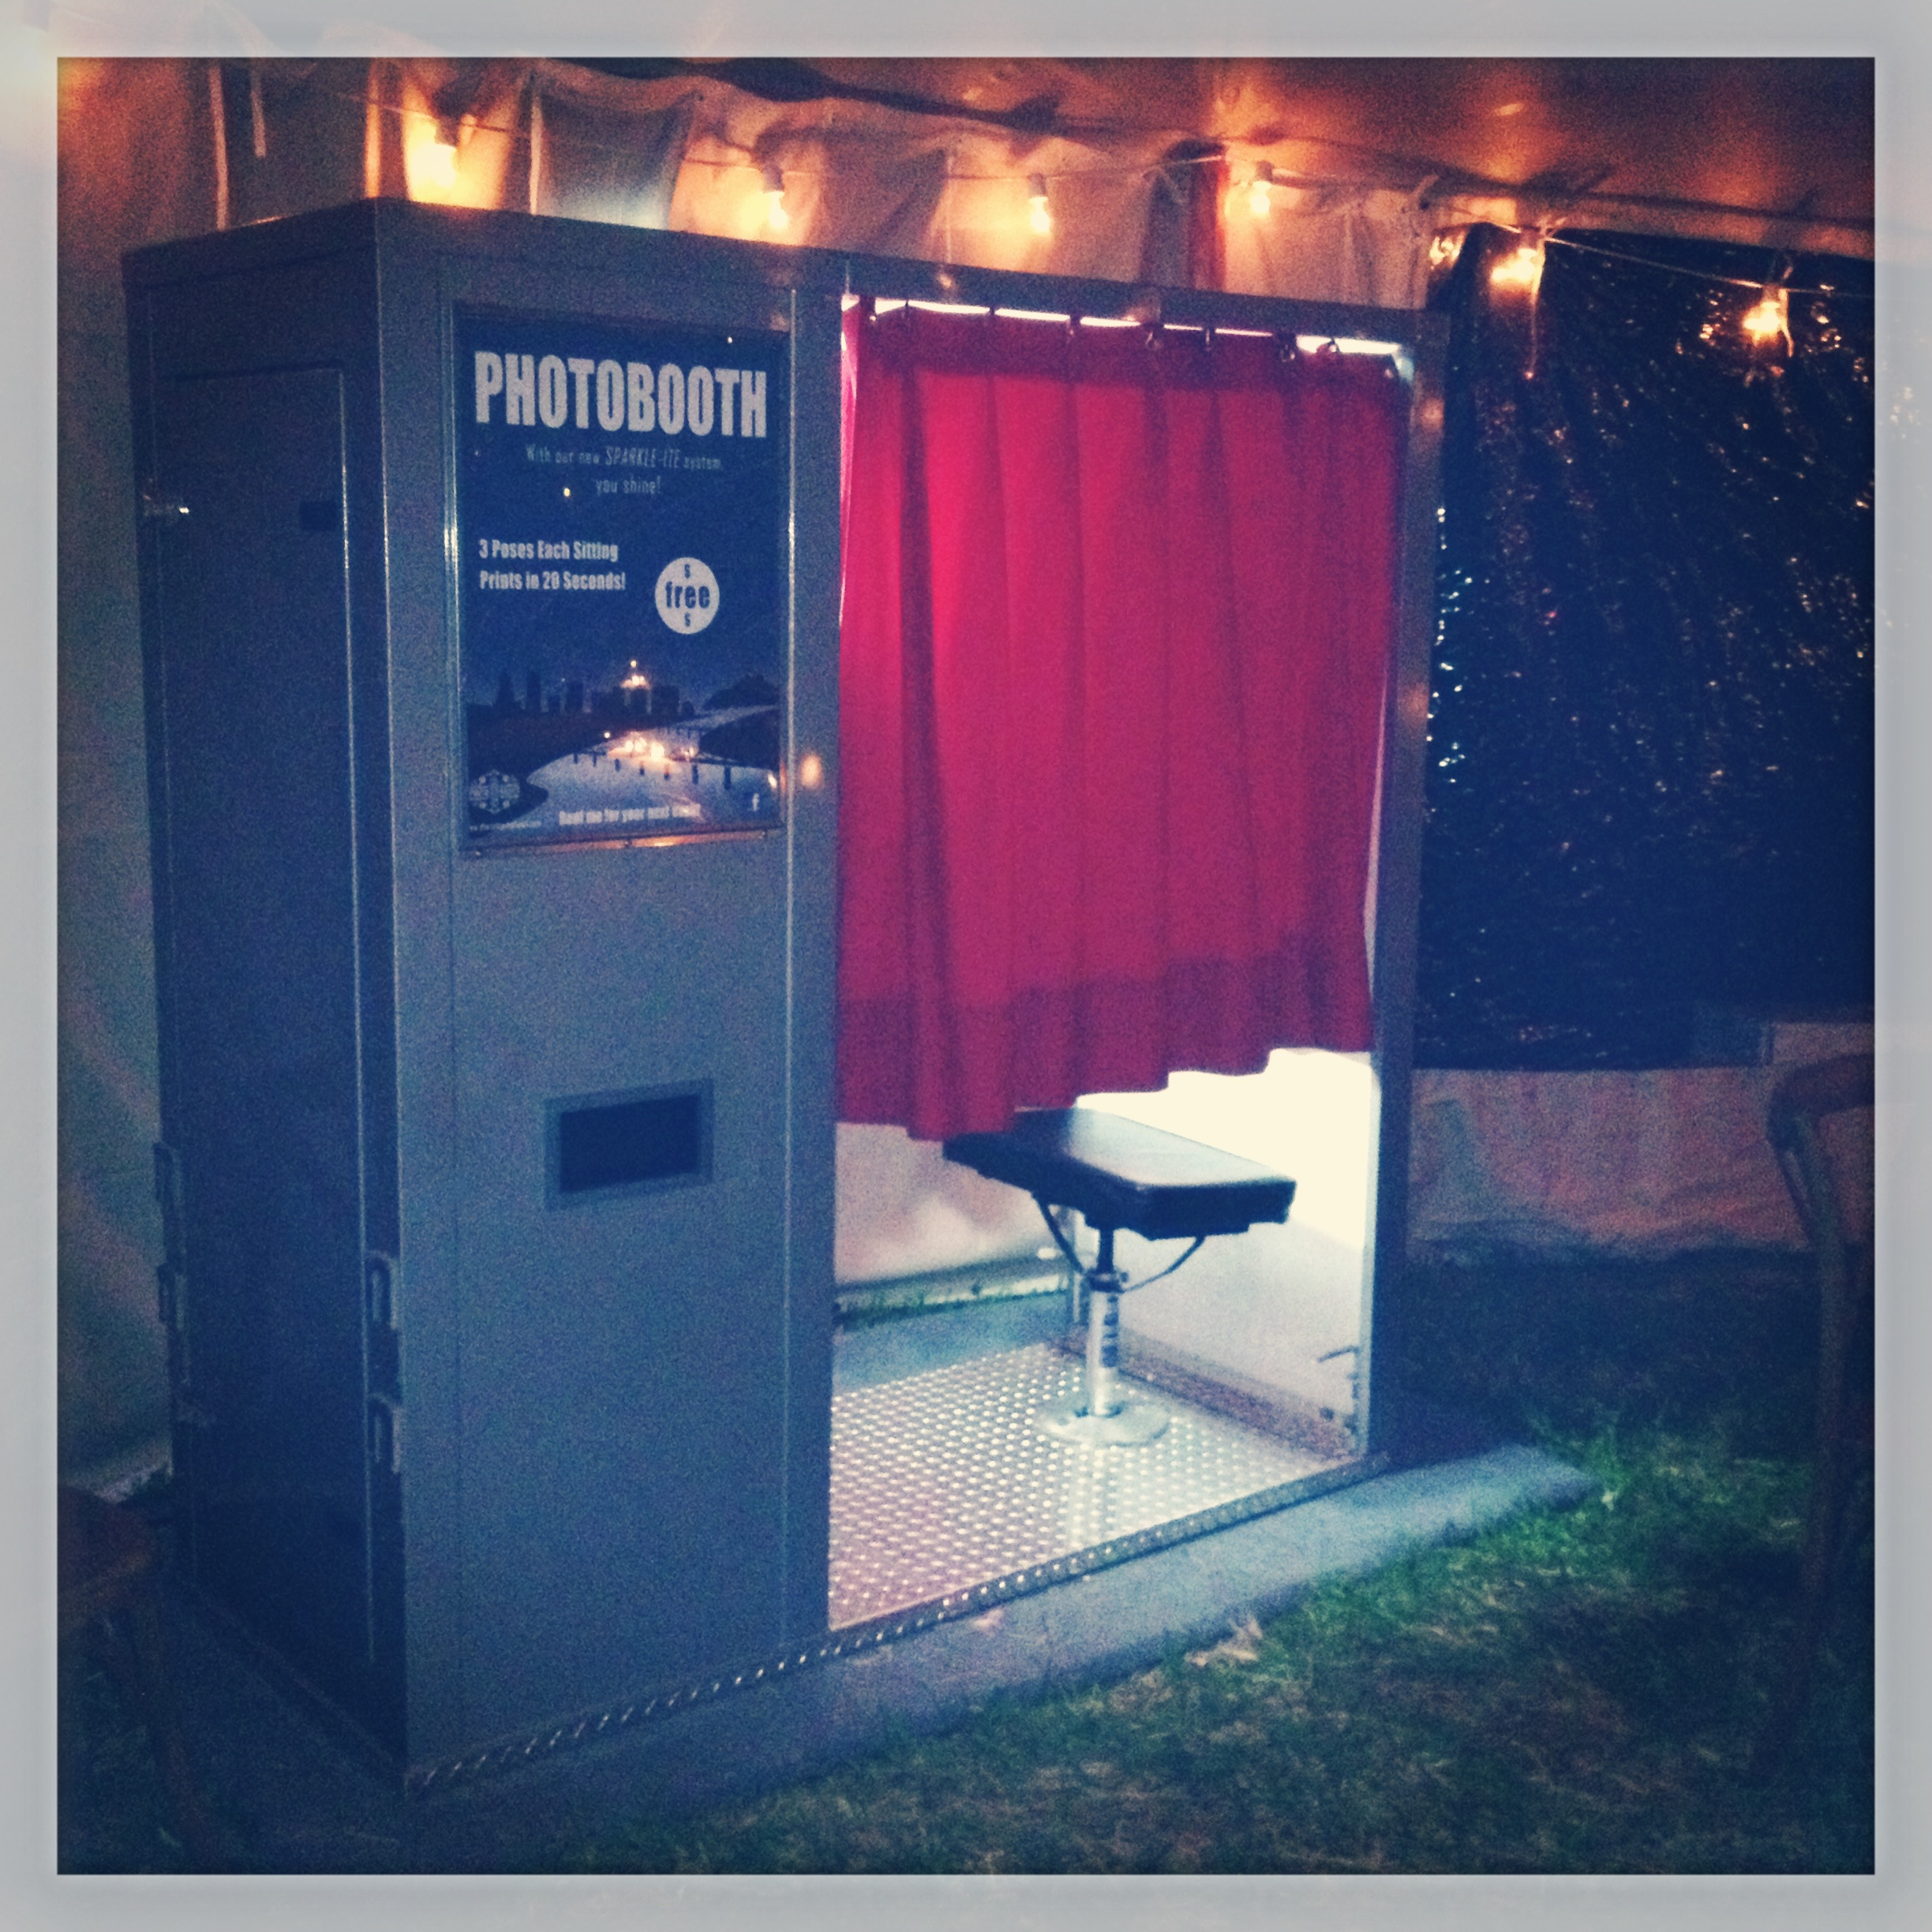 Photo Booth Rental NJ - The Classic Jersey Photo Booth - Photobooth